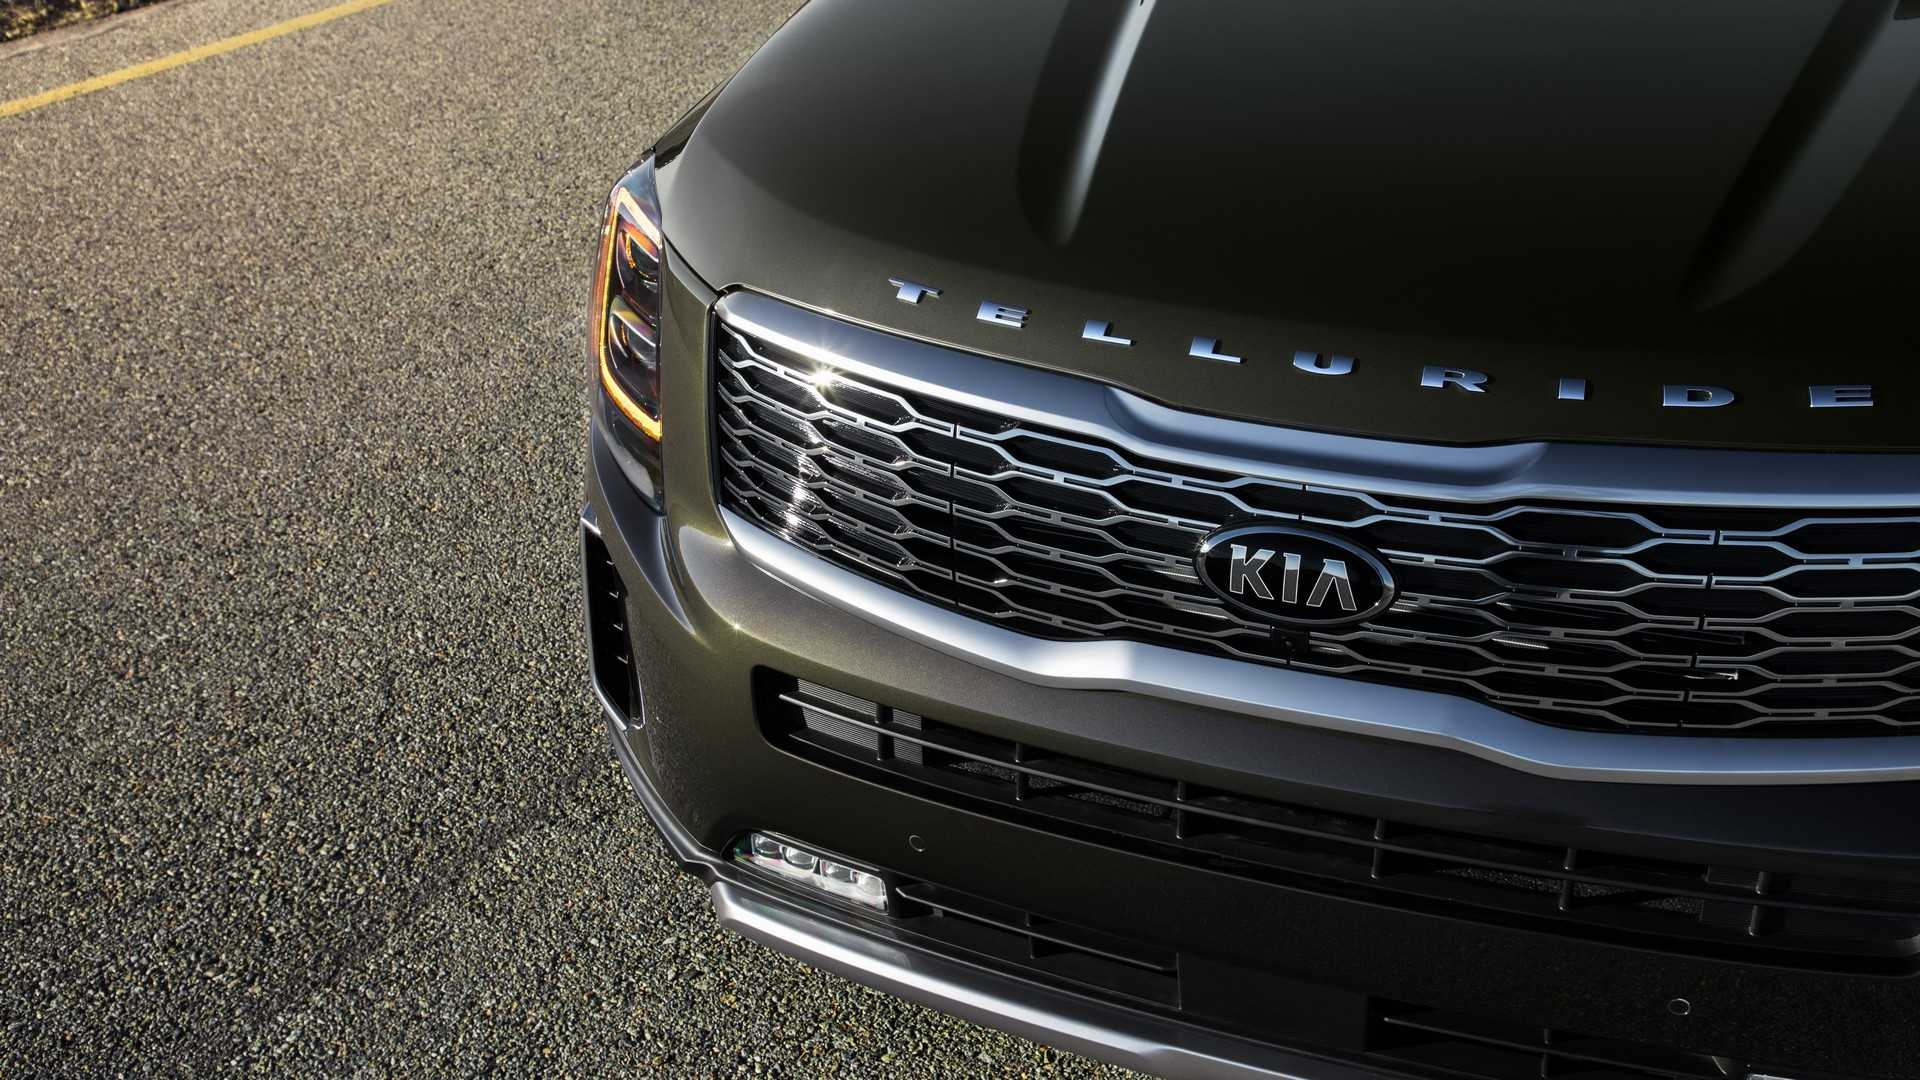 40 New Kia New Truck 2020 Price And Review